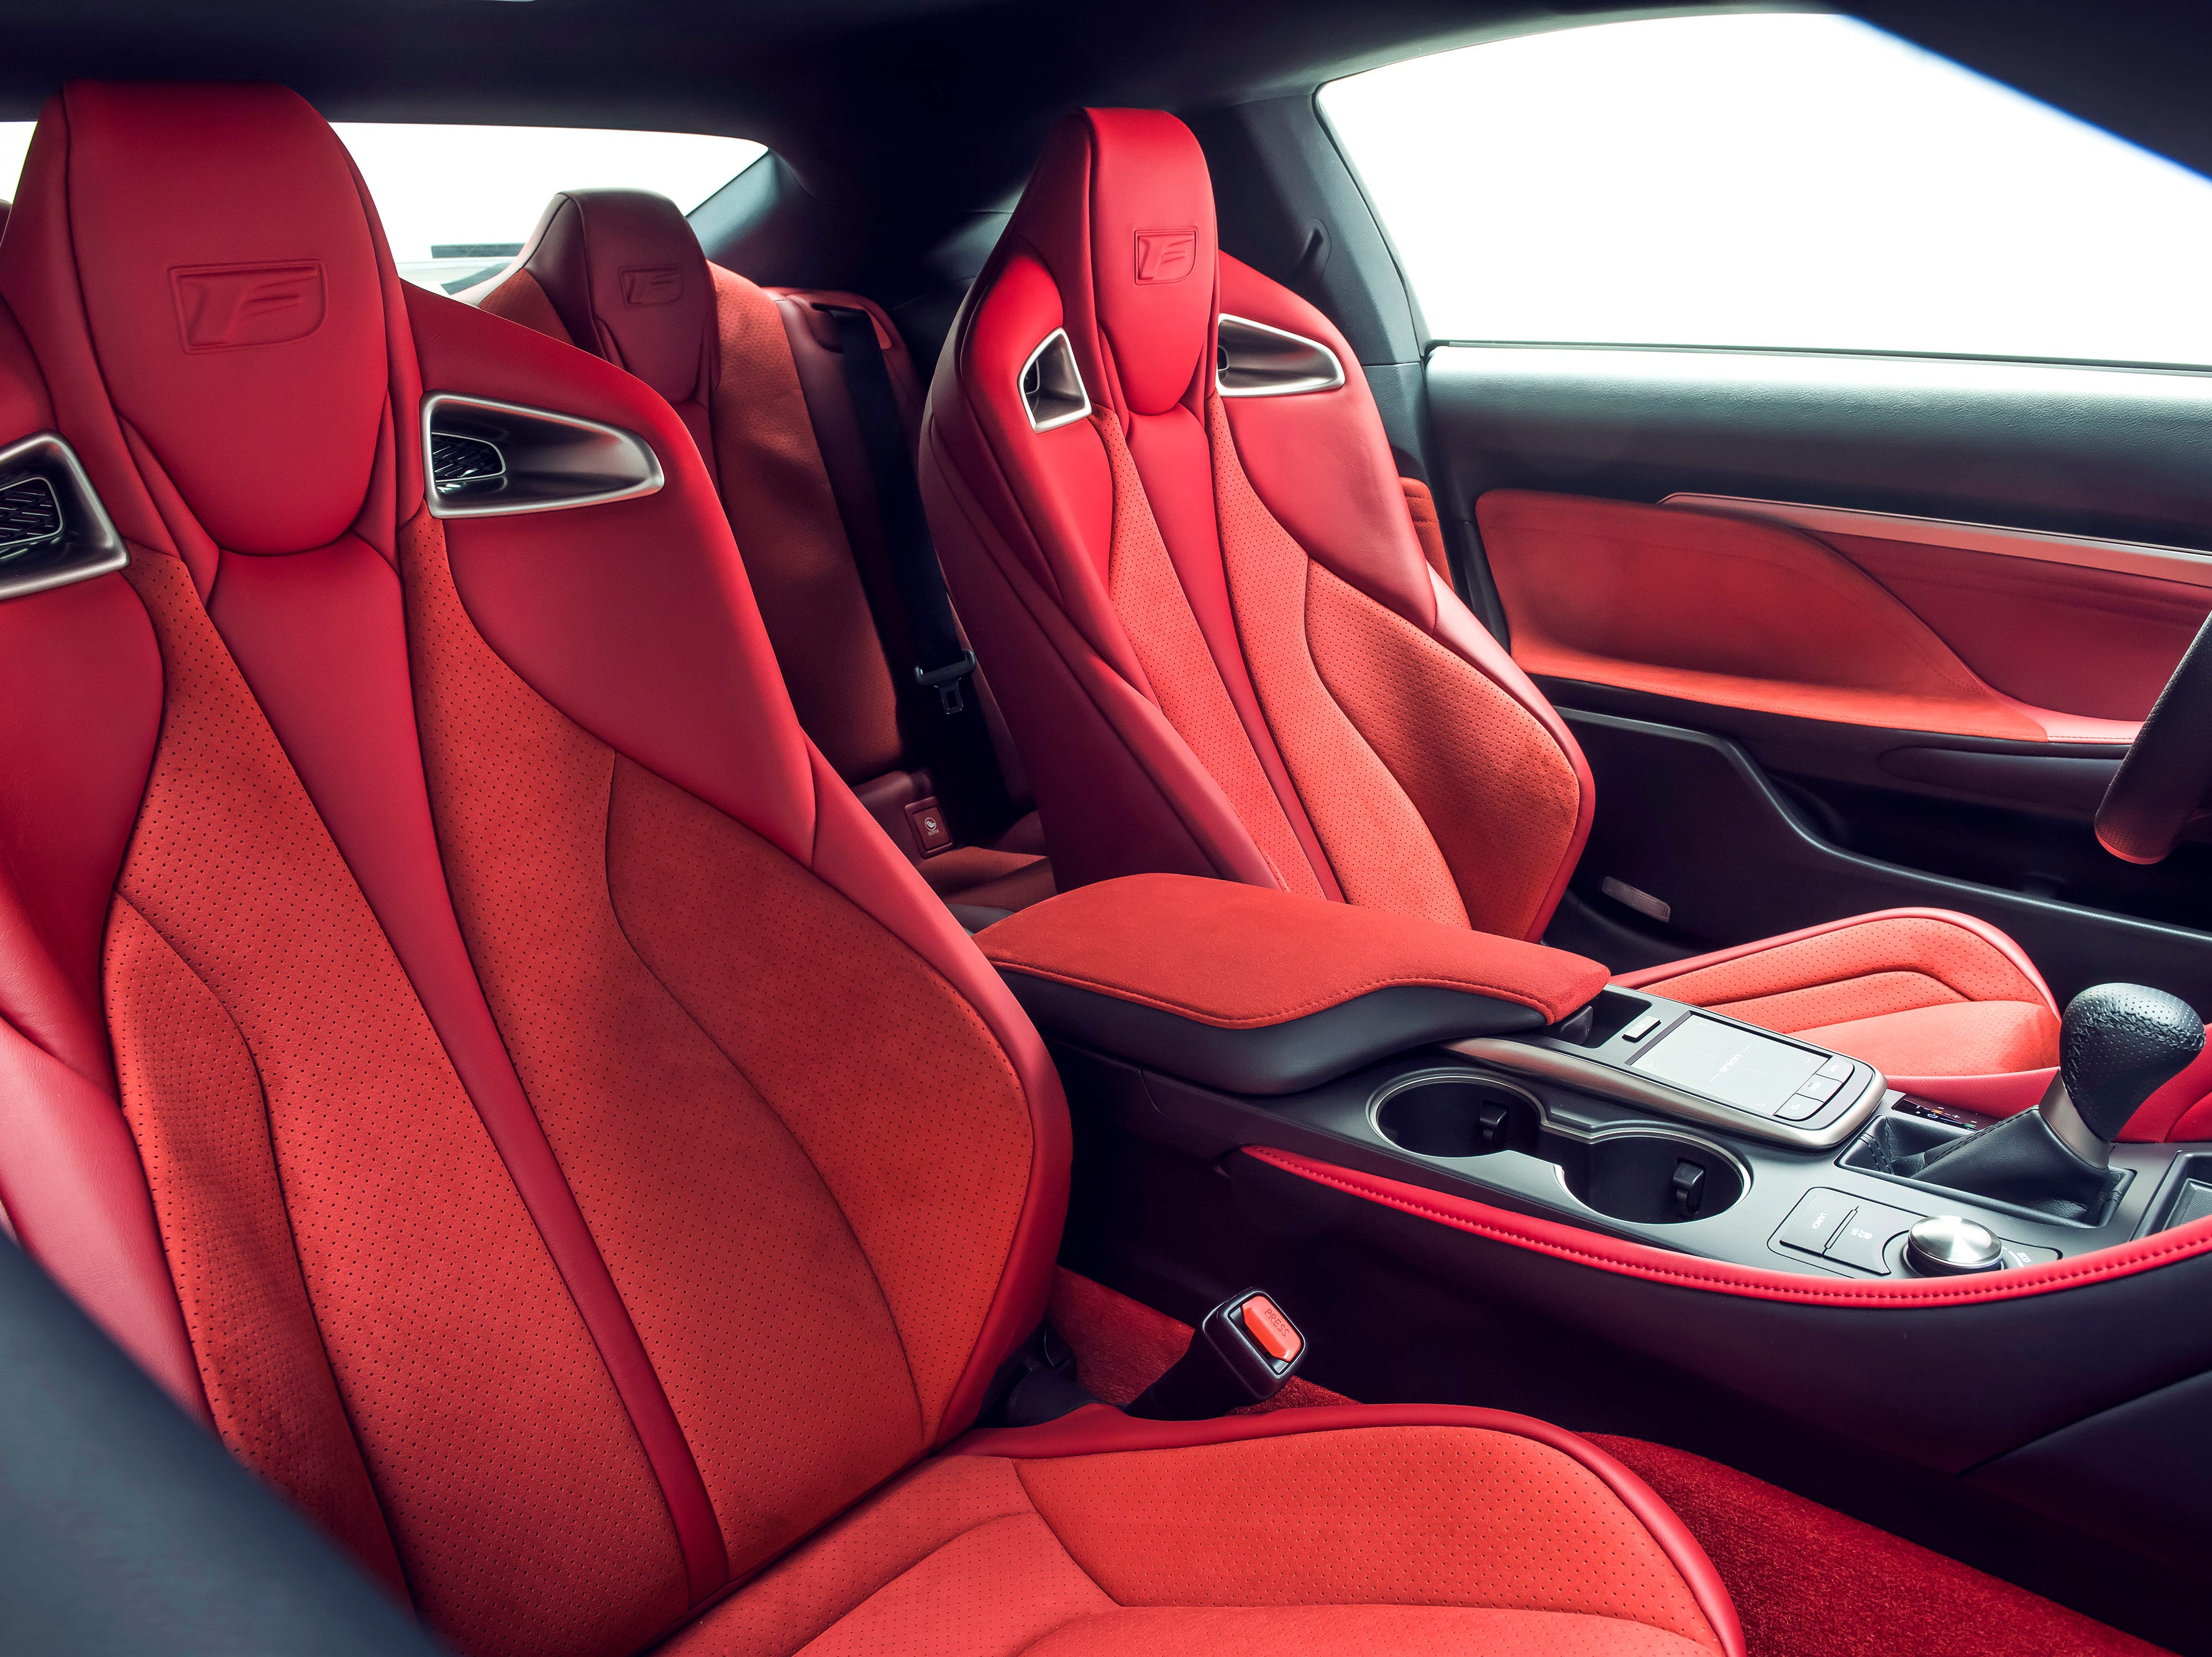 A red leather interior comes standard on the Lexus RC-F Track Edition along with Alcantara seat accents and red carbon trim on the doors and dashboard.